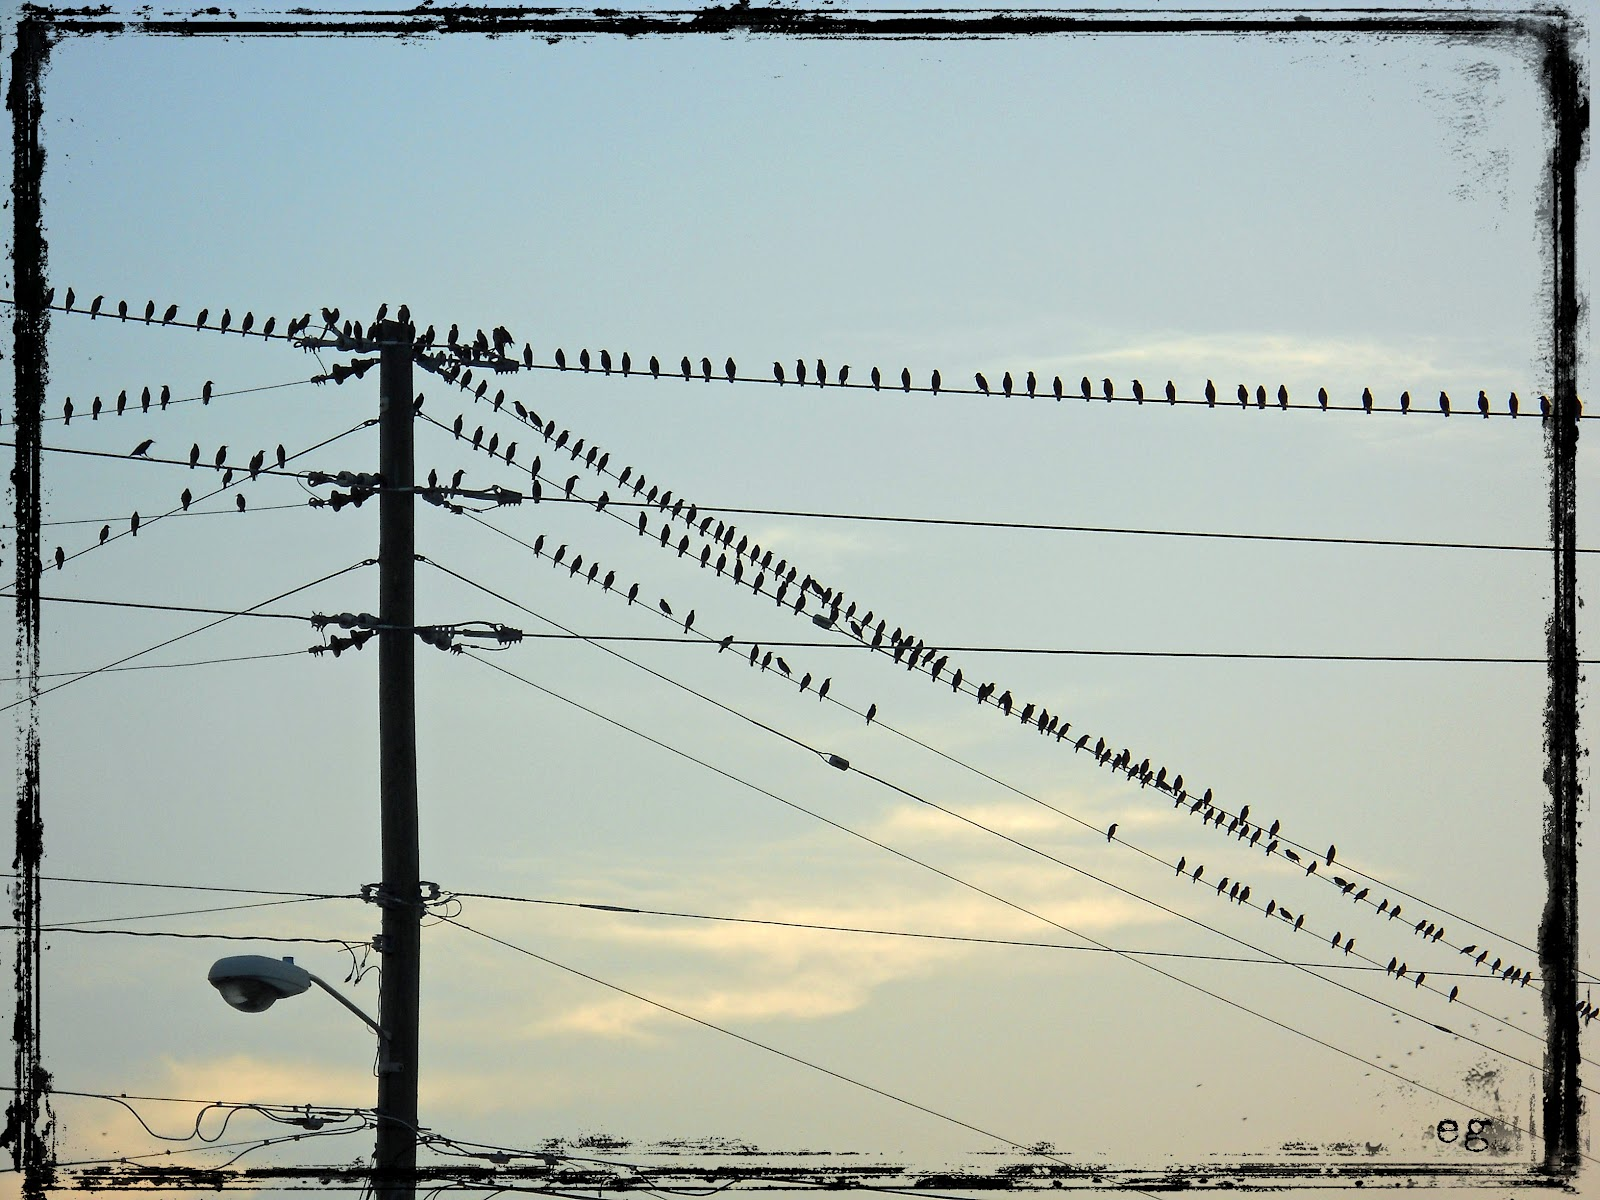 birds on a wire stopping at a light in a small town in tennessee at